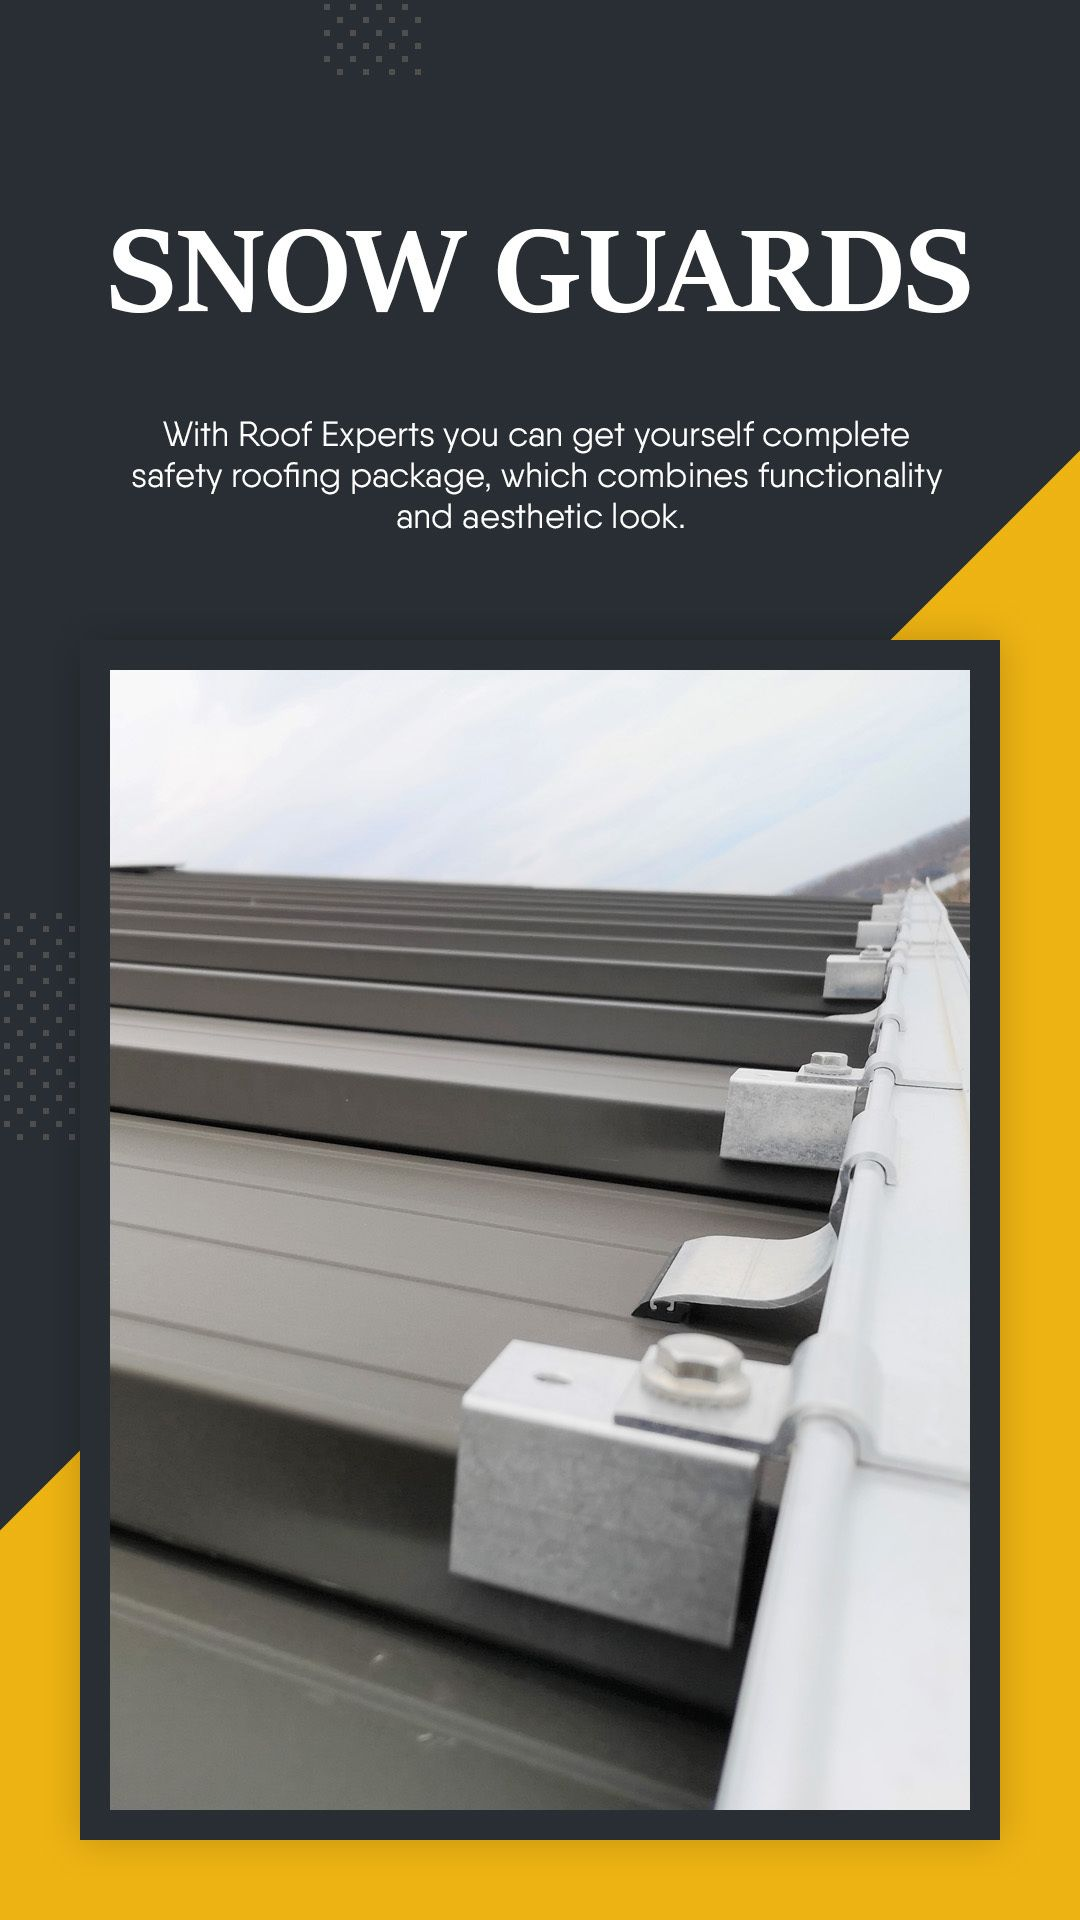 Our Snowguards Solutions Start From 10 L F Metalroof Metalroofing Metalroofs Steelroof S Standing Seam Metal Roof Roofing Specialists Metal Roof Houses